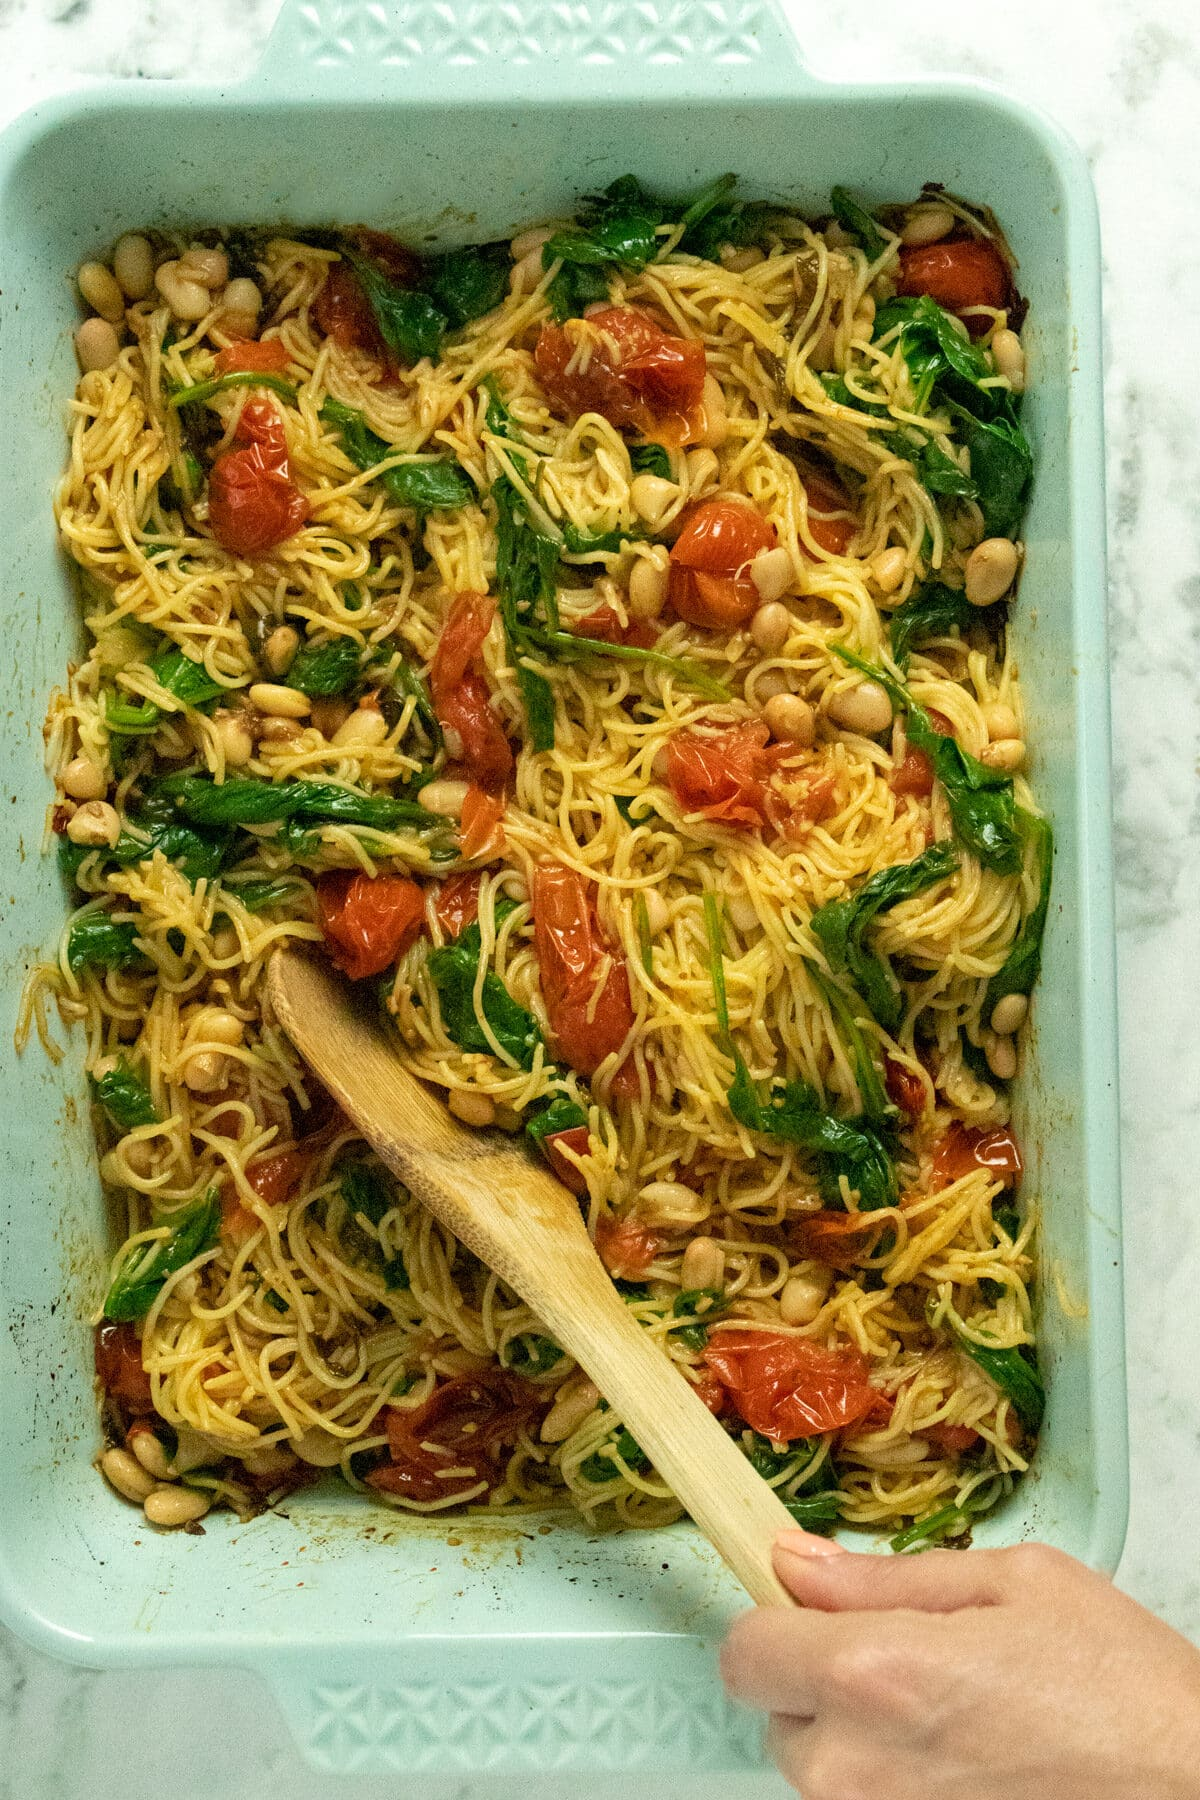 A baking pan filled with pasta and vegetables